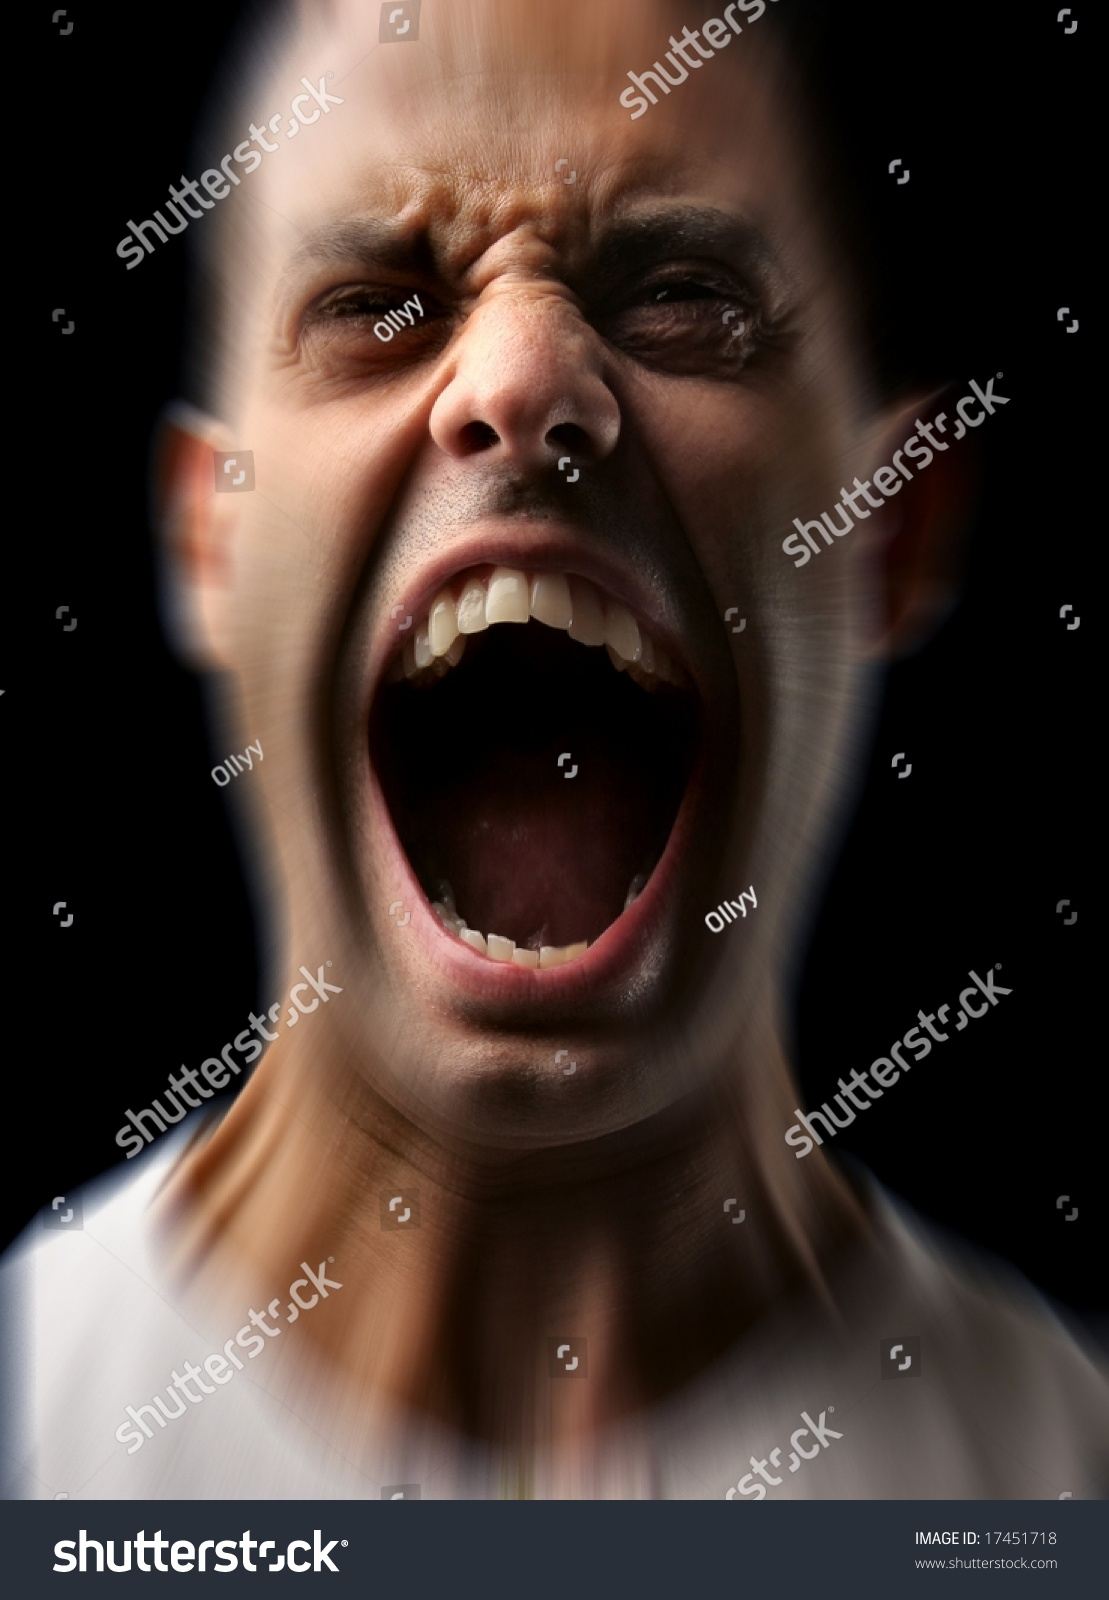 Angry Man Screaming Stock Photo 17451718 : Shutterstock